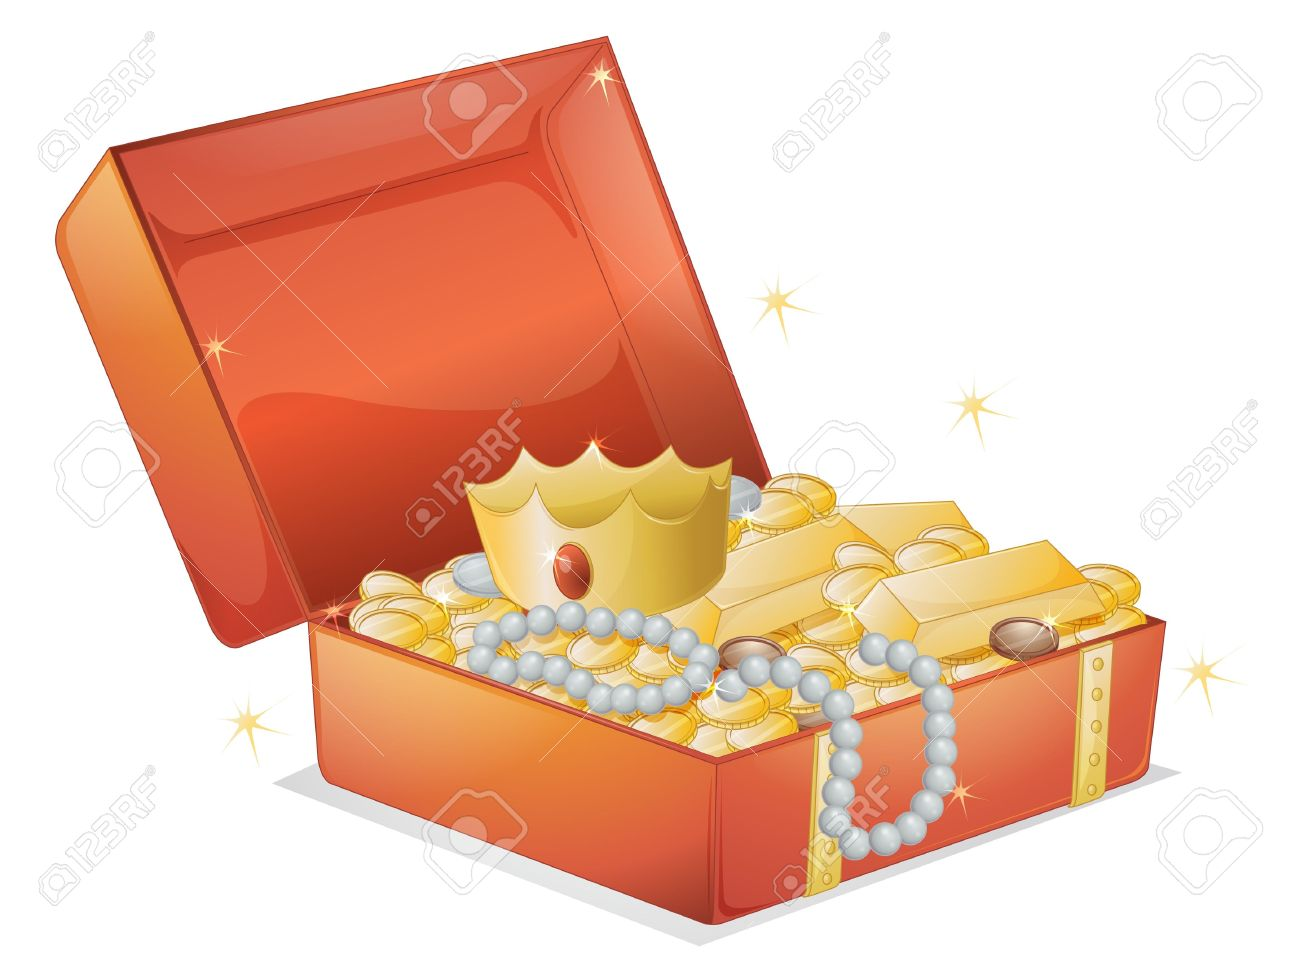 Jewelry box with jewelry clipart.